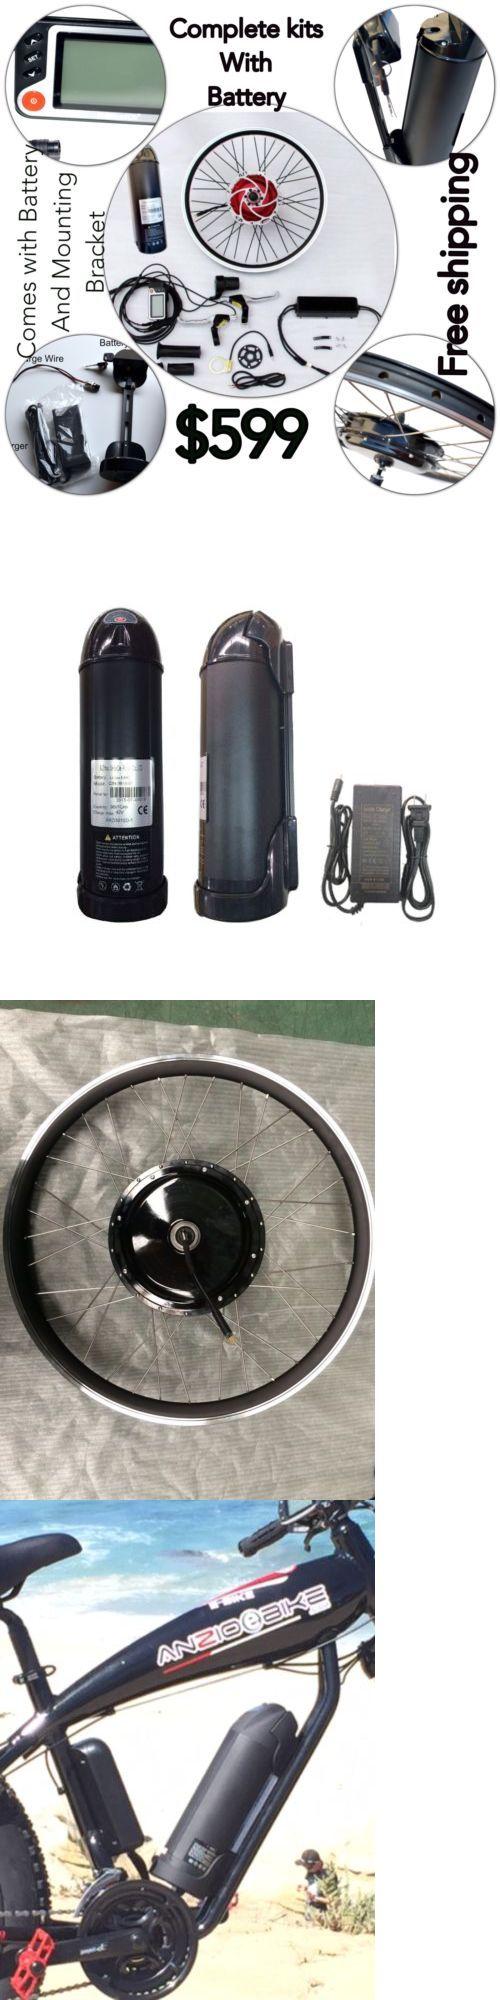 Electric Bicycle Components 177814: Electric Bike 36V,500W Front Wheel Kit With 36V 10Ah Lithium Battery Complete -> BUY IT NOW ONLY: $599 on eBay!